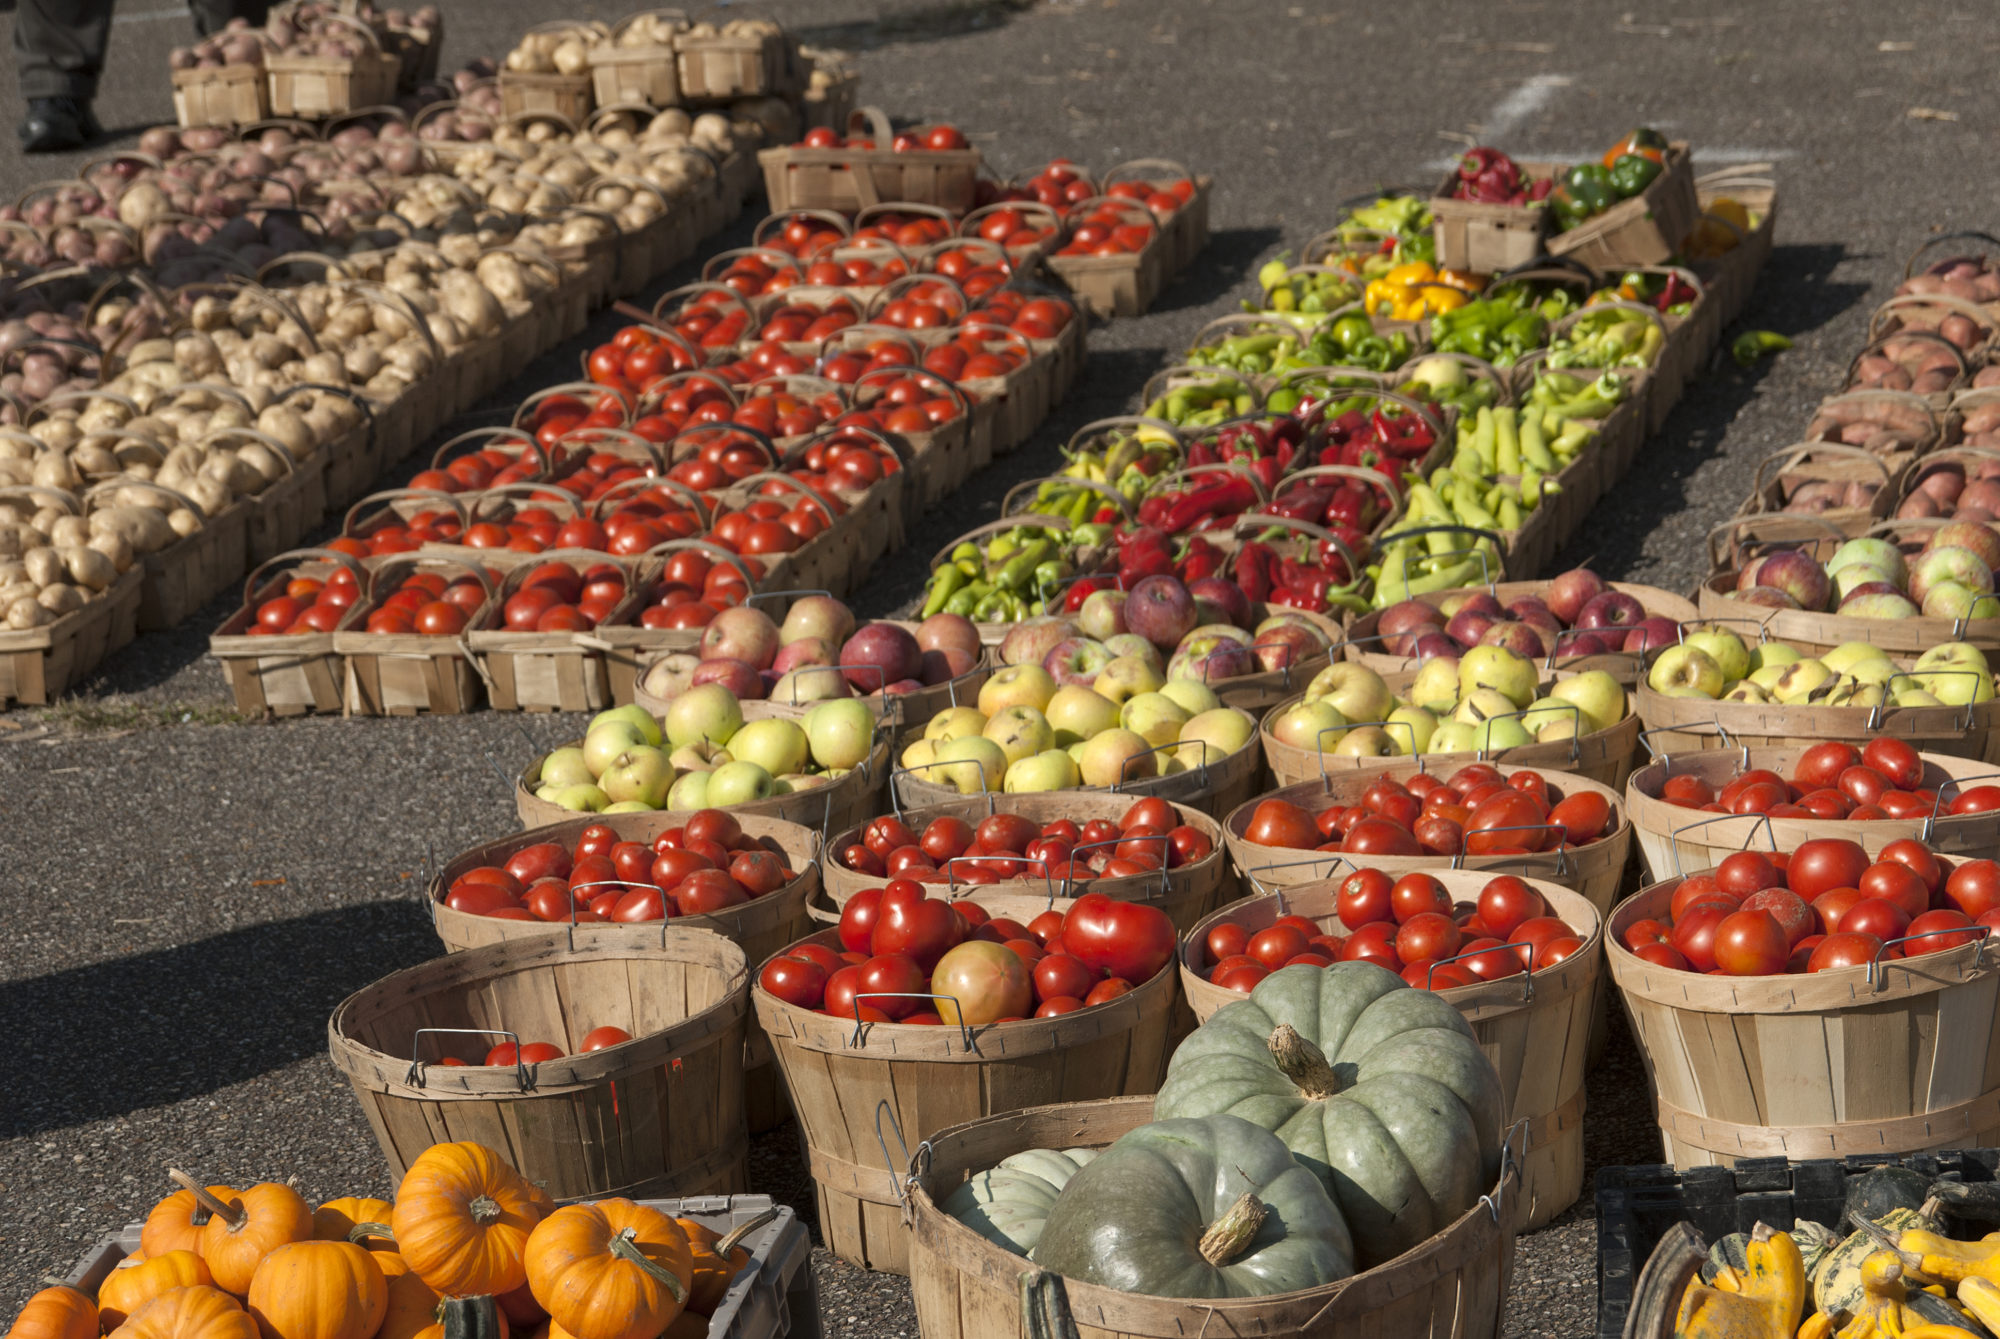 Produce at a local farmers market